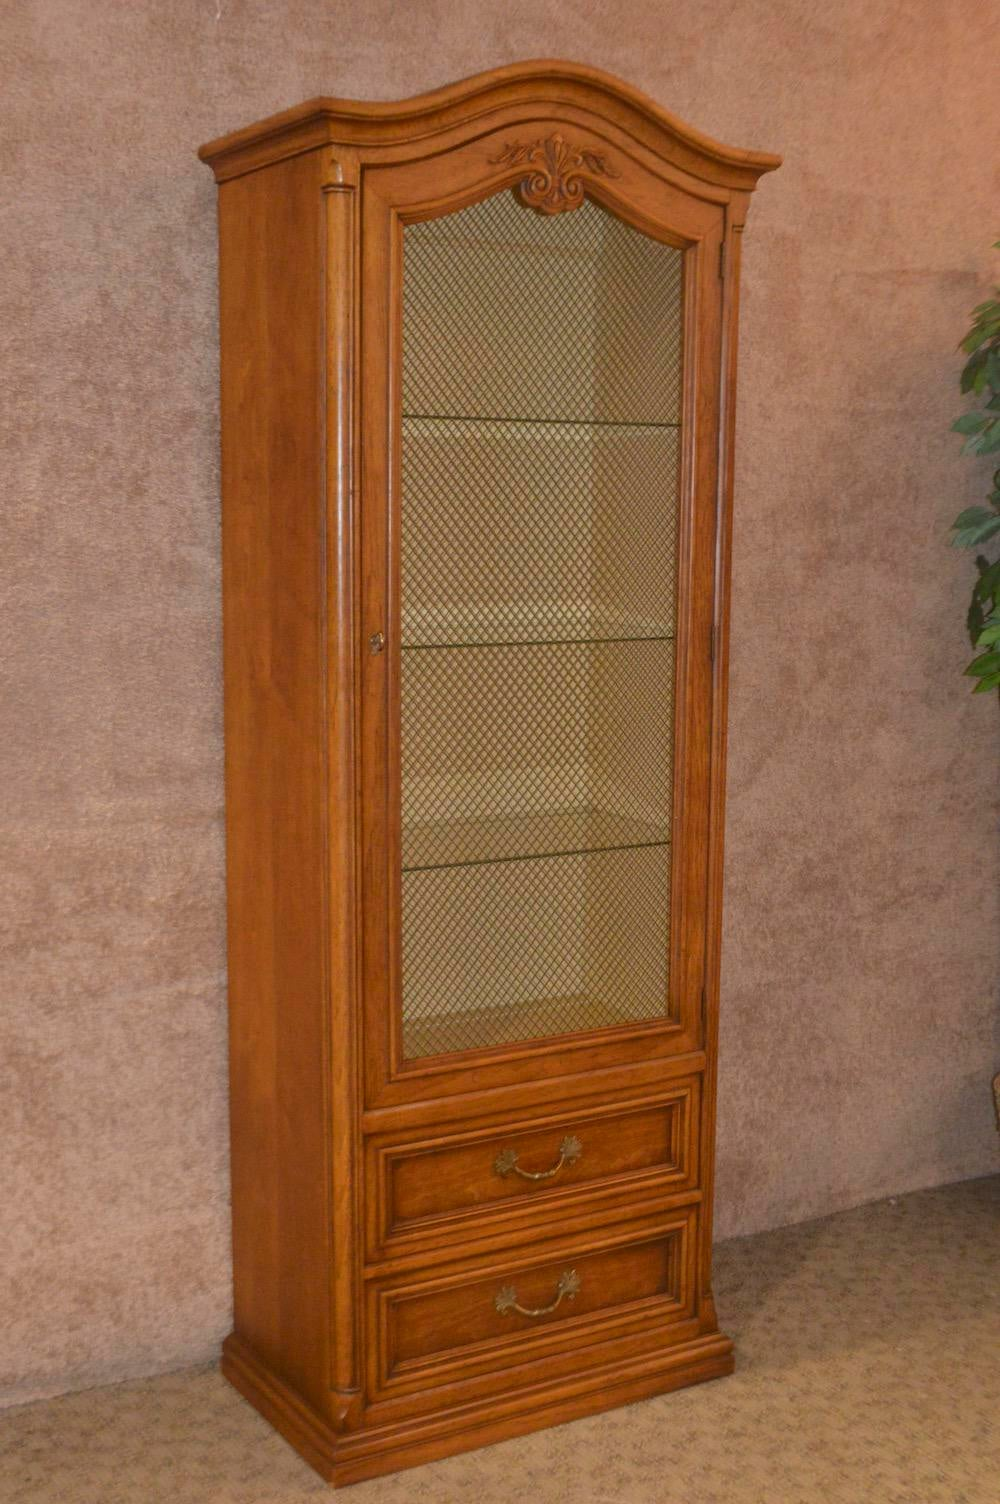 Curio/Display Cabinet Has A Metal Mesh Front Door Panel, Three Glass  Shelves,. Country Vintage Henredon Country French ...